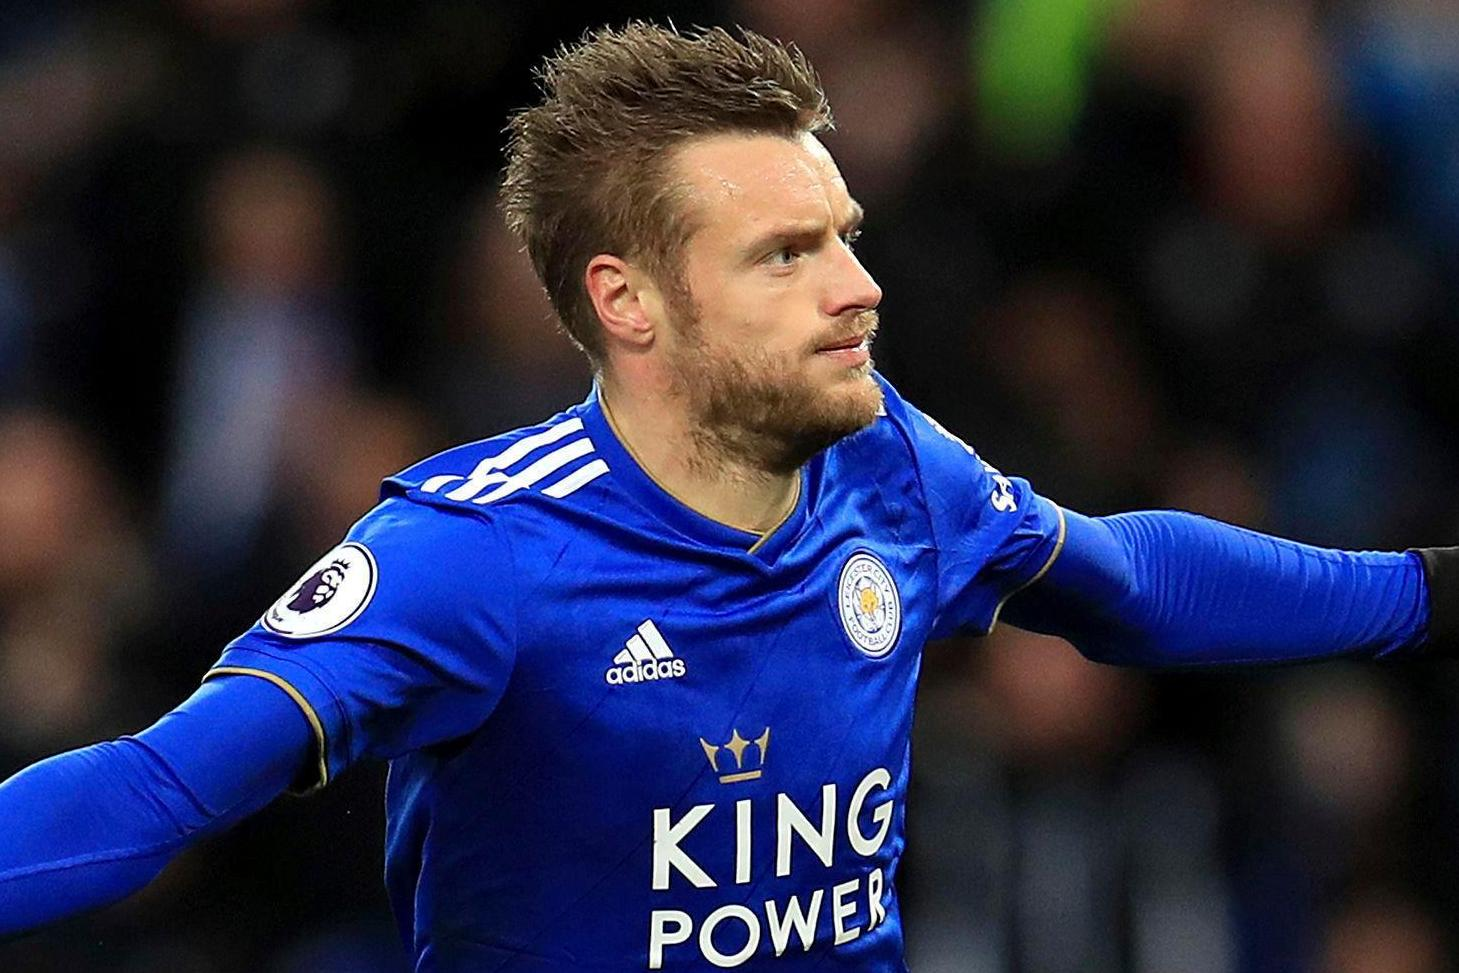 Jamie Vardy fit for Leicester's trip to Crystal Palace after groin issue